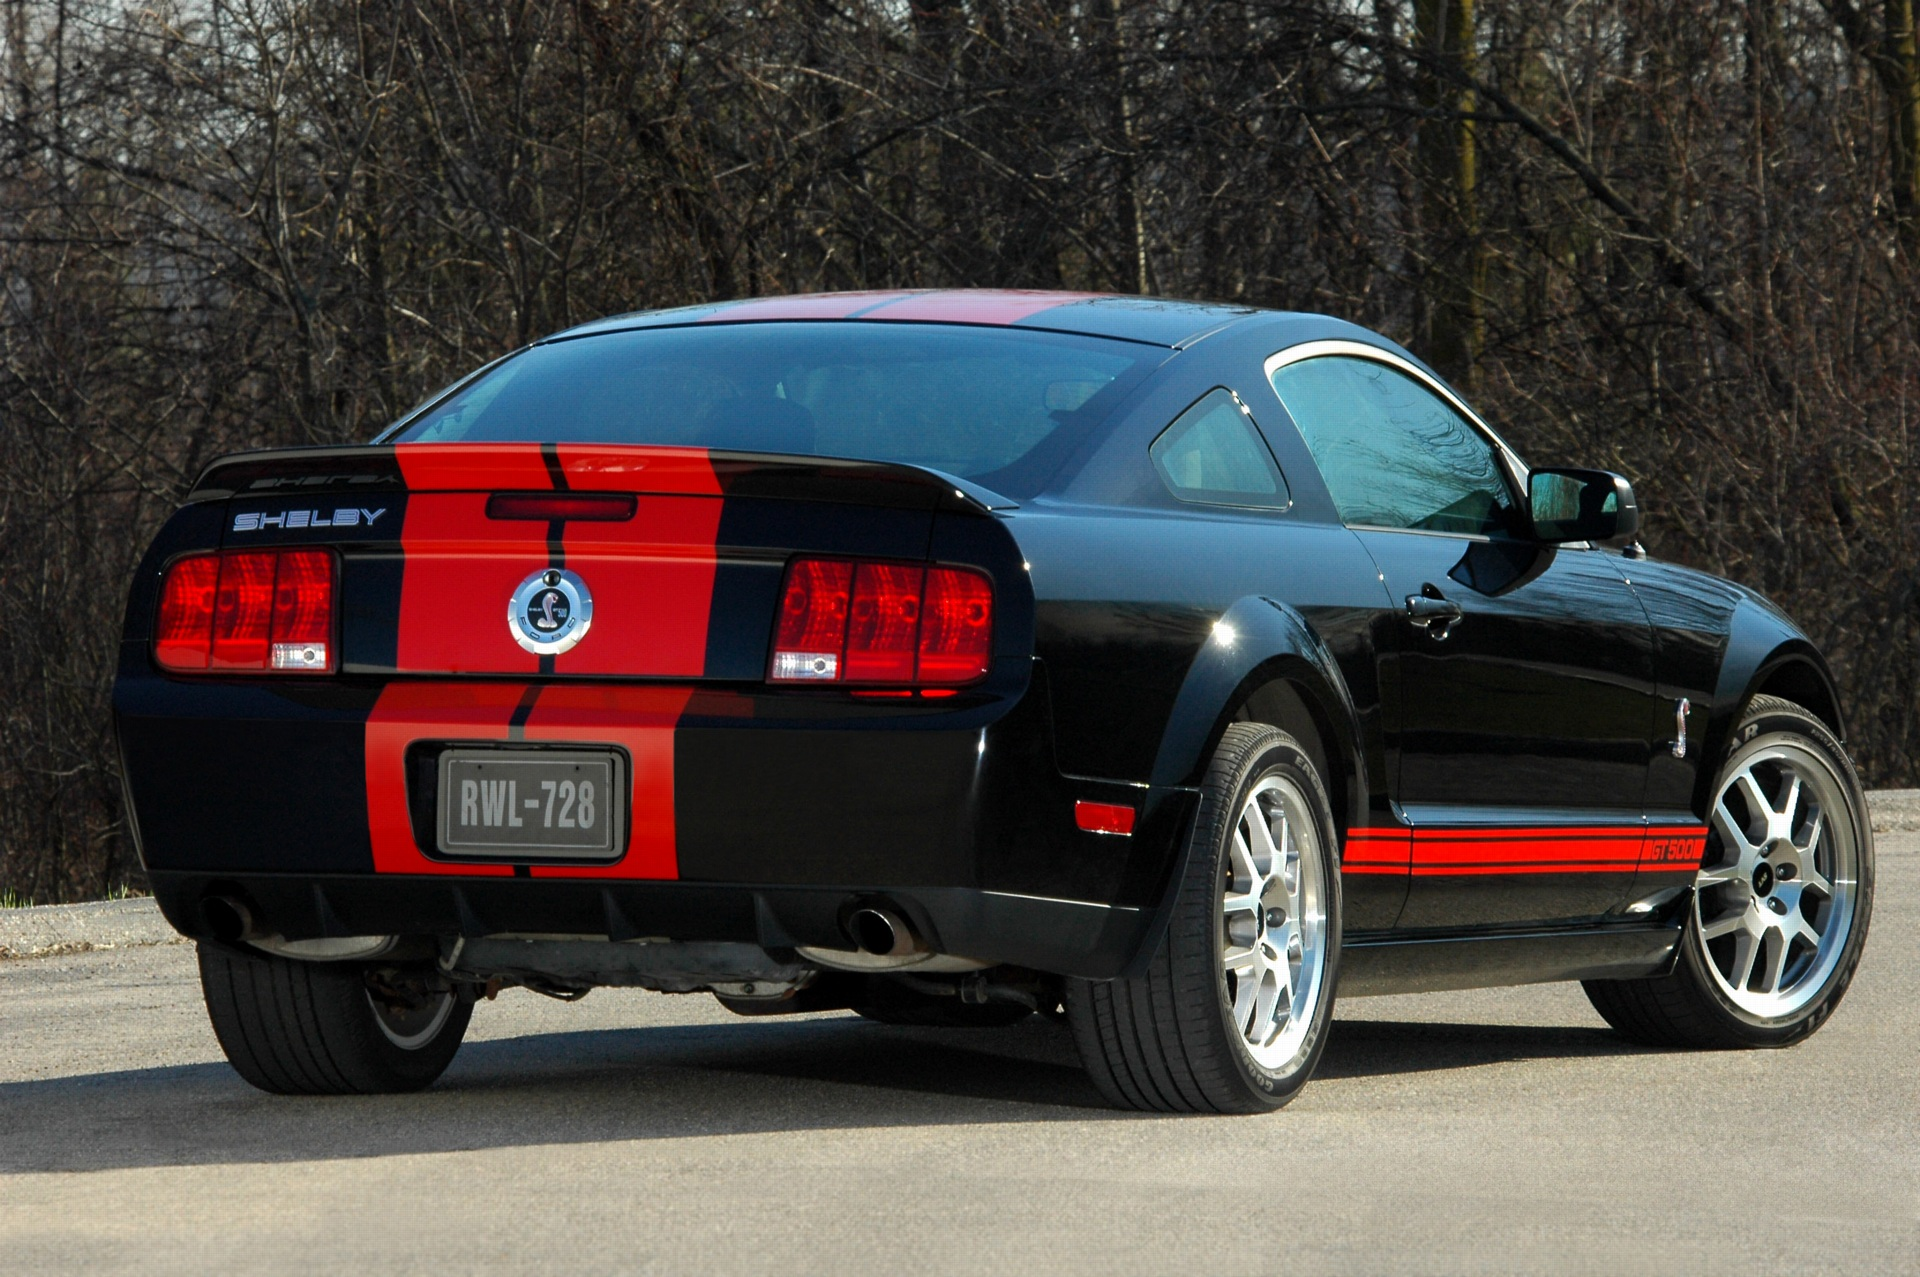 2007 Shelby Mustang GT500 Red Stripe Pictures, History ...